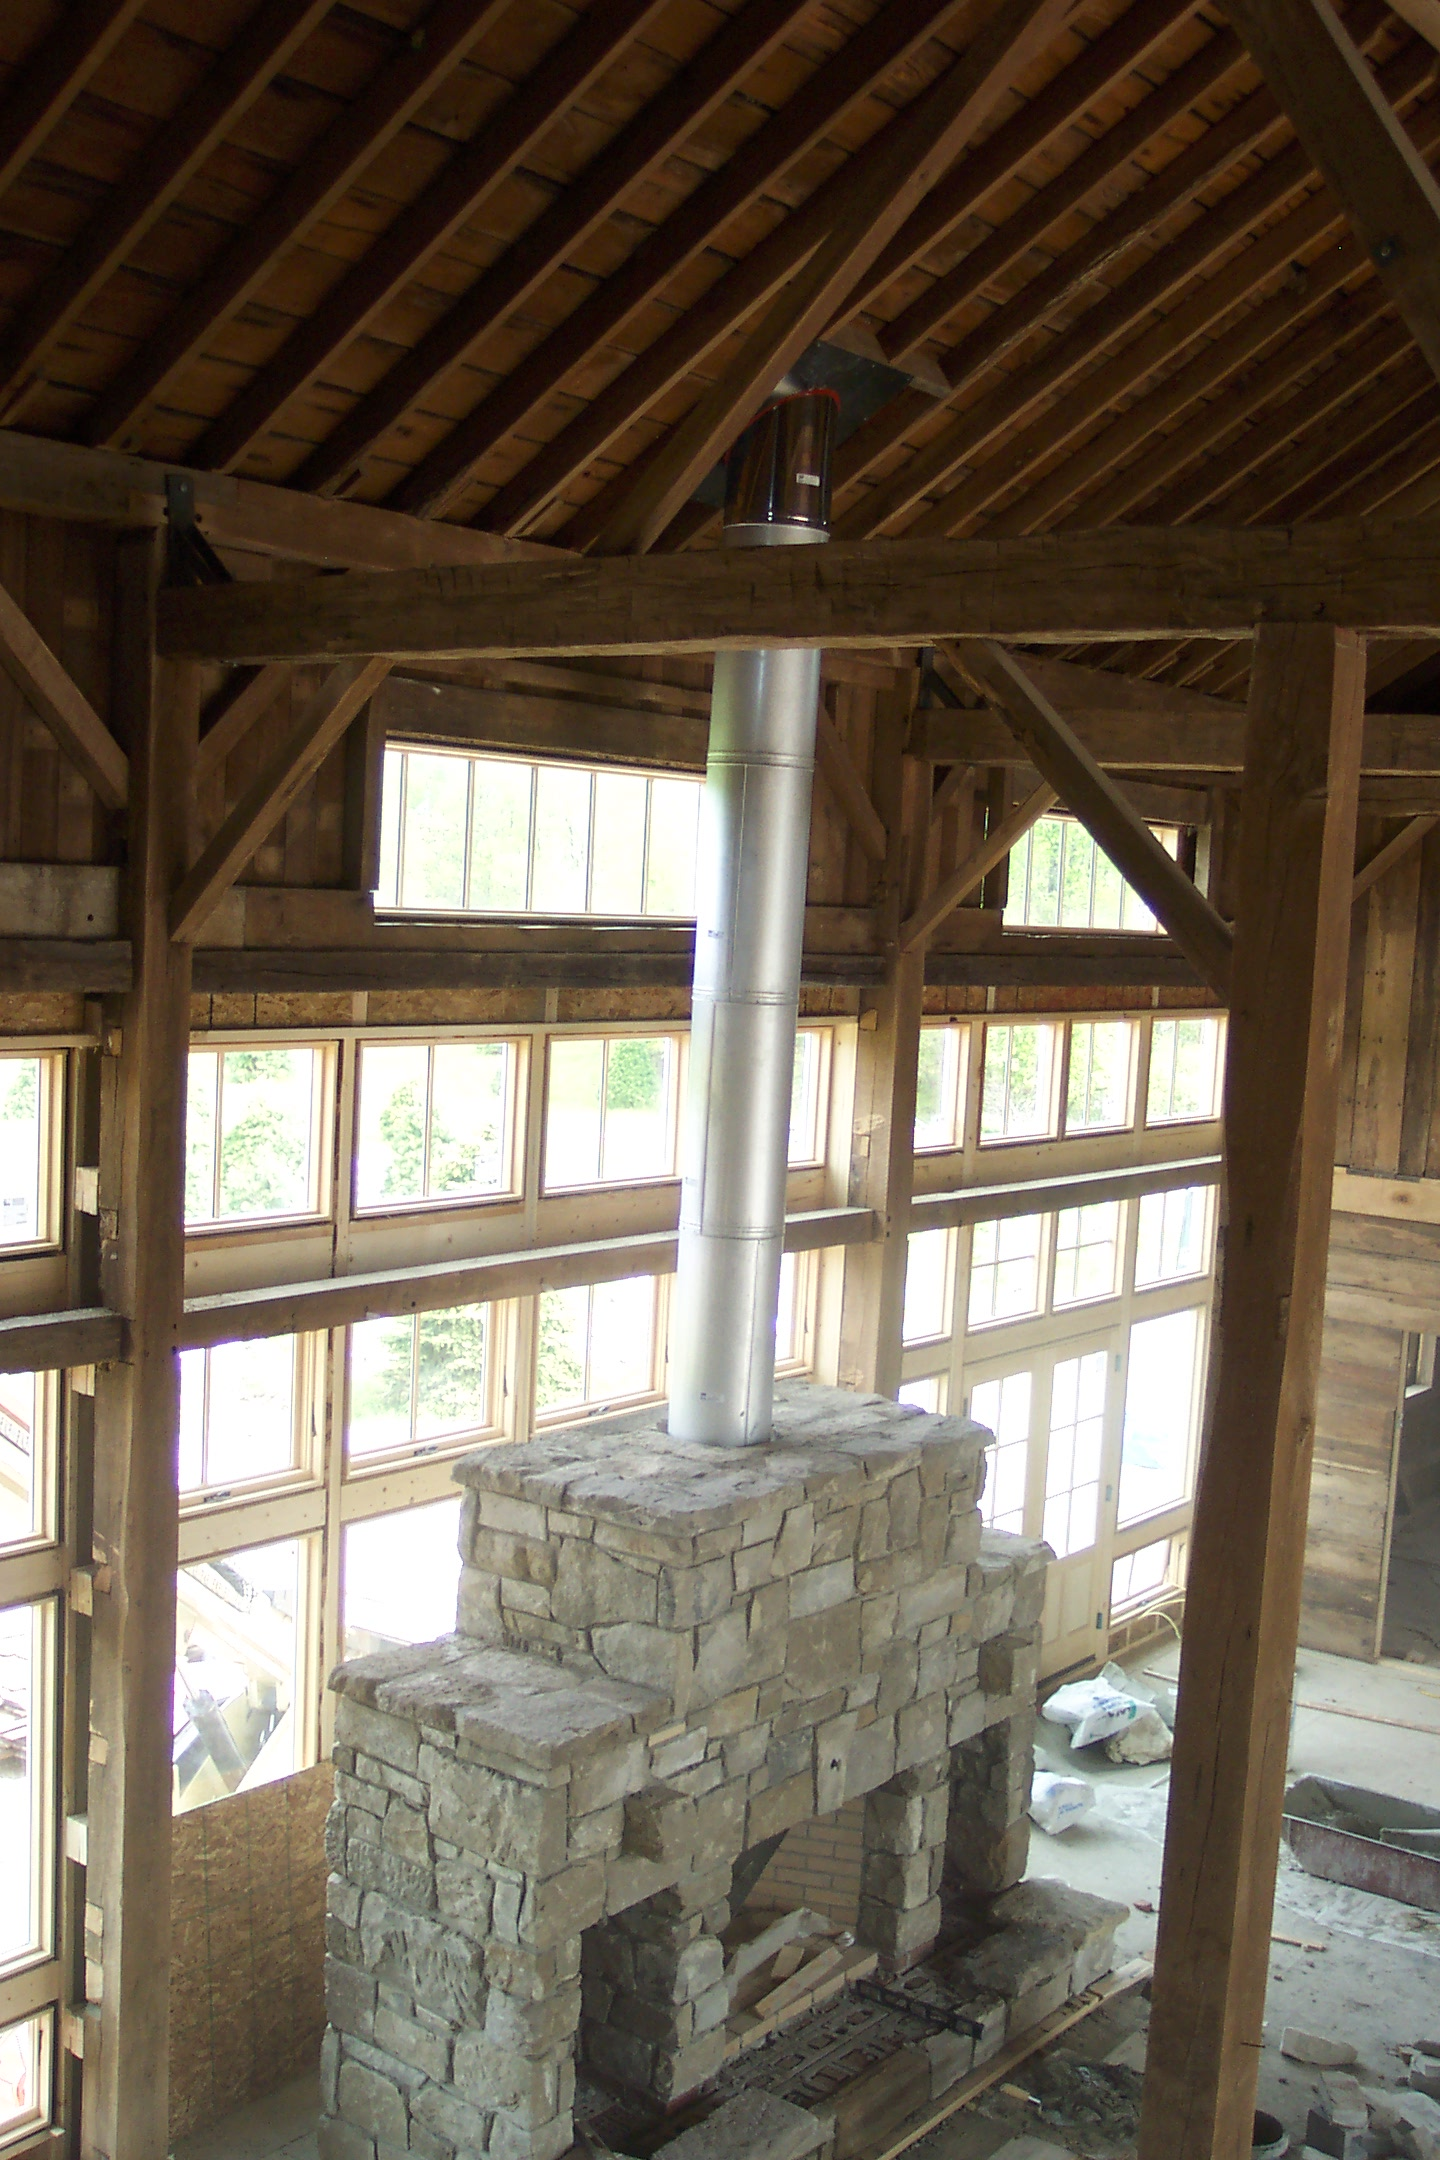 Interior of the Bank Barn